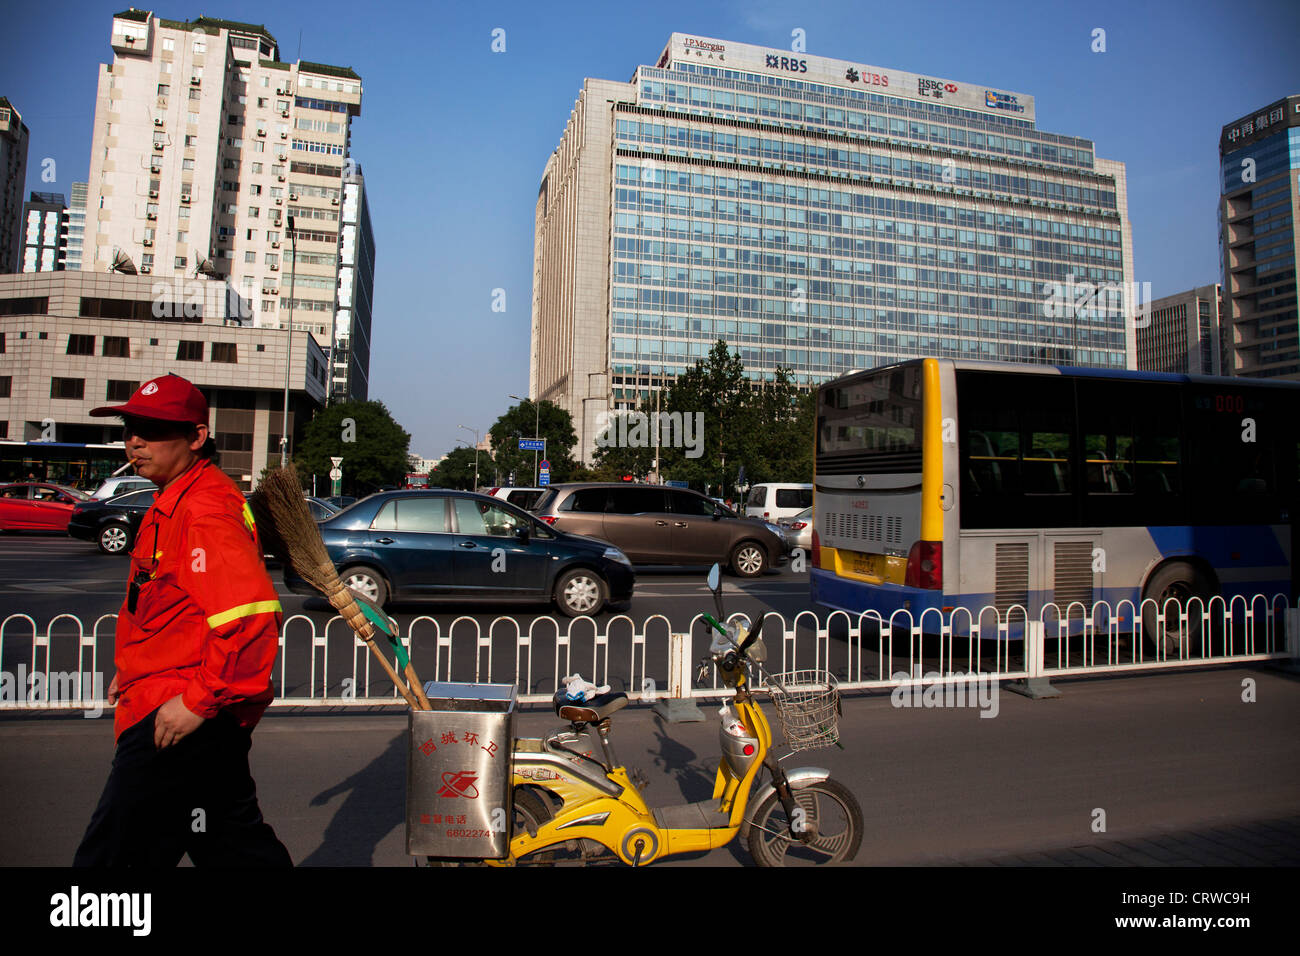 Banks and banking institutions along Financial Street, Beijing, China. - Stock Image